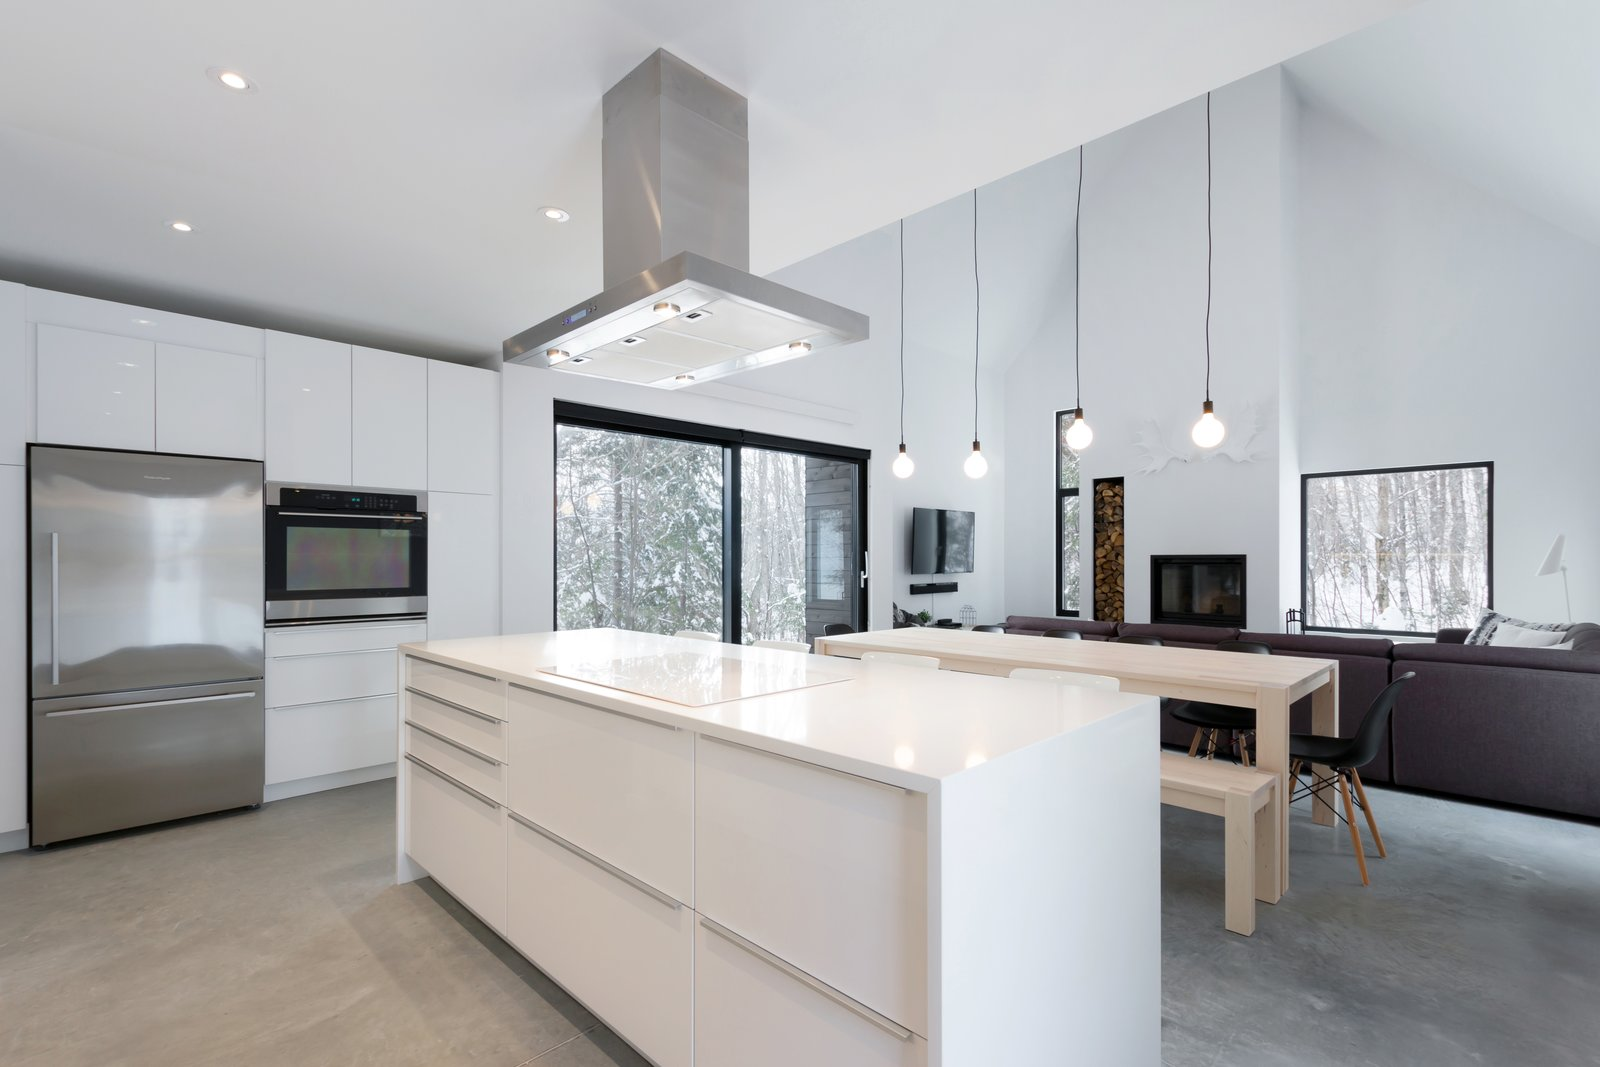 Kitchen, Concrete, Quartzite, Wall Oven, Range Hood, Cooktops, Refrigerator, Ceiling, and White  Best Kitchen Wall Oven Ceiling Quartzite Photos